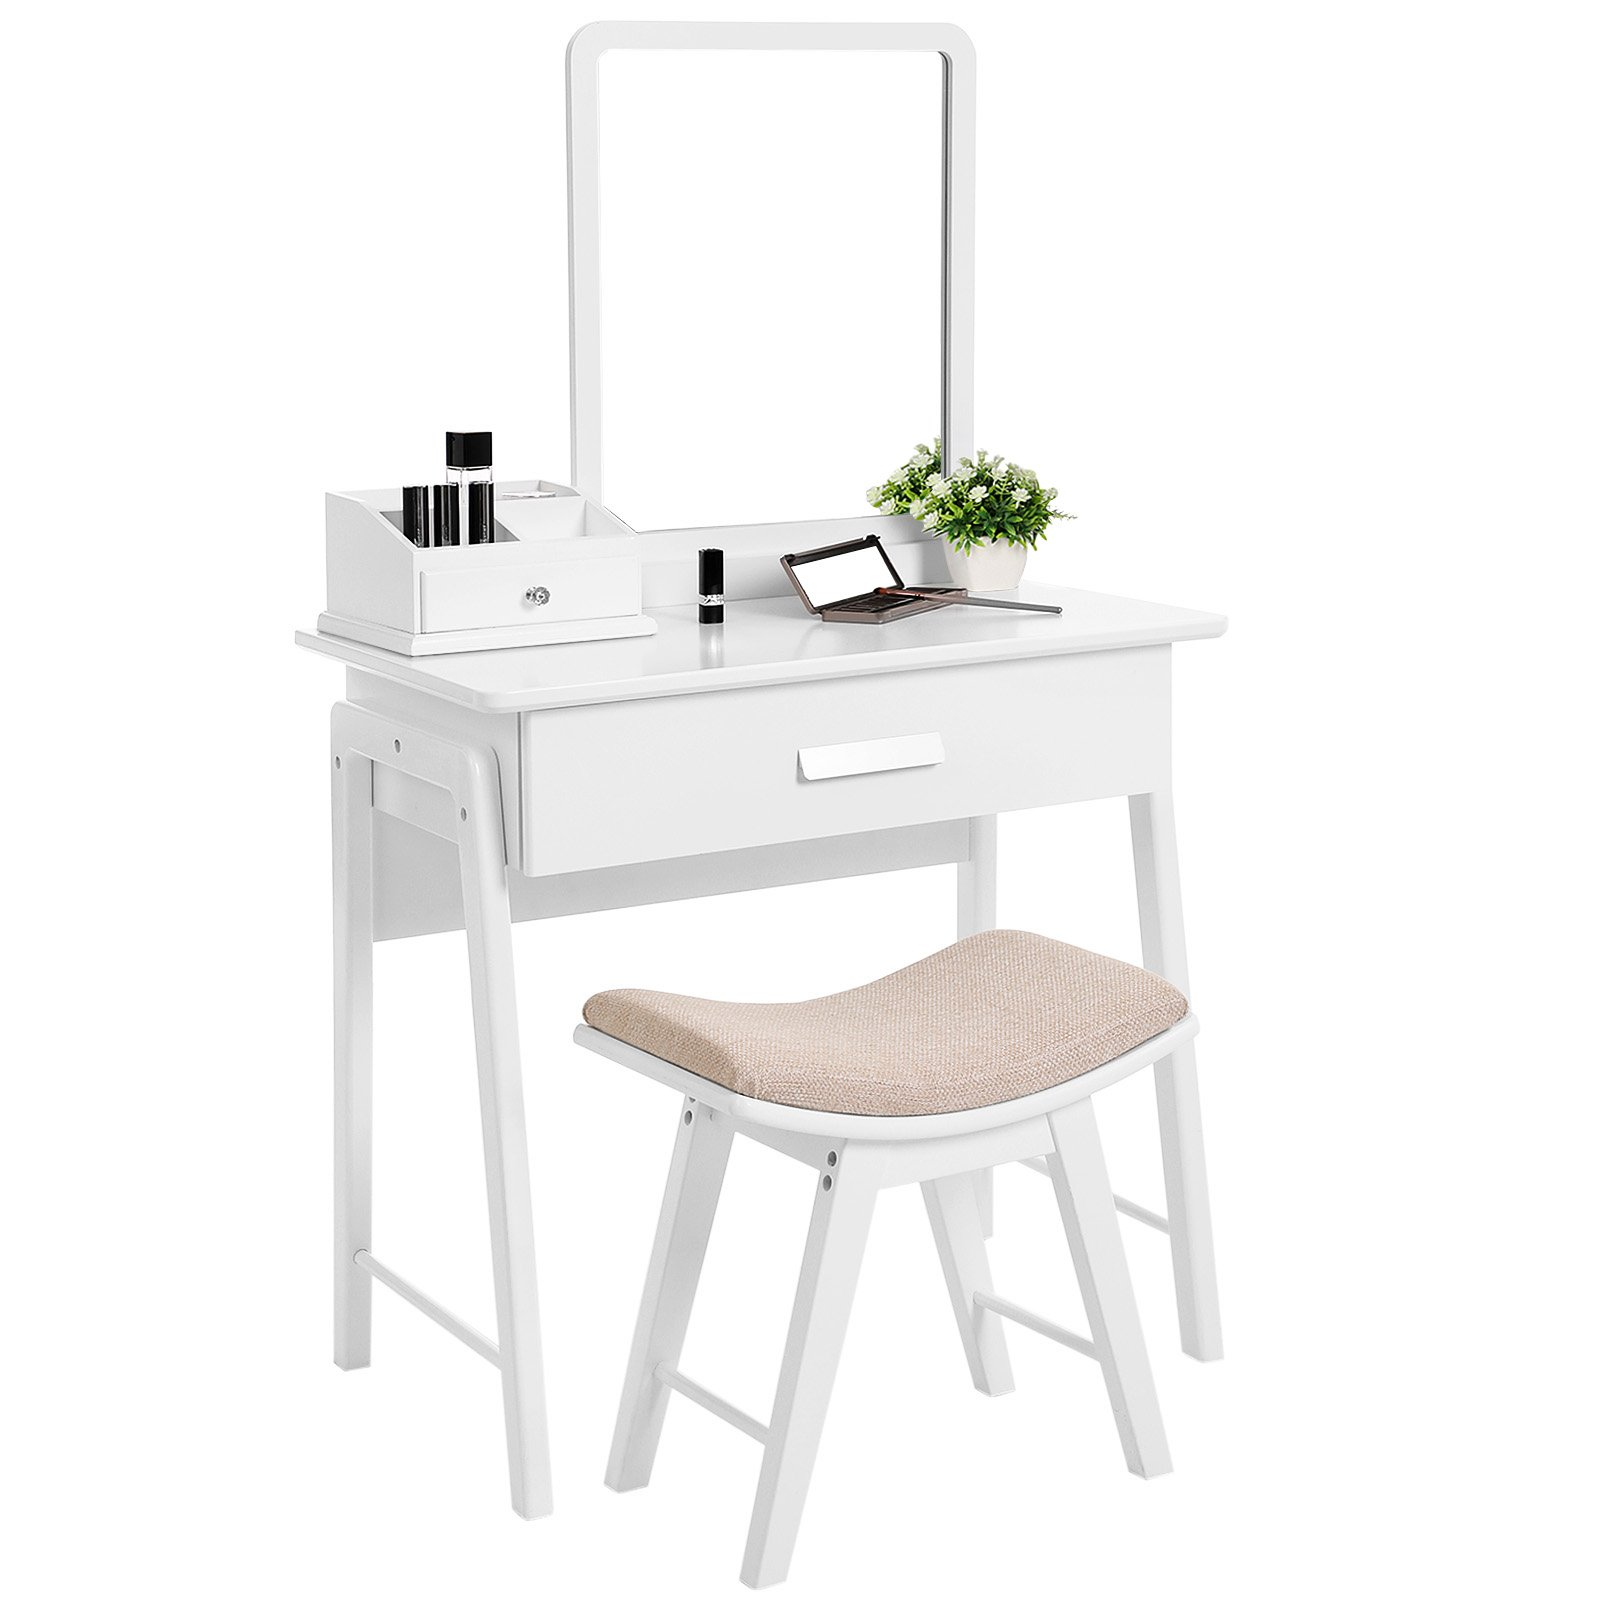 SONGMICS Vanity Table Set with Square Mirror and Makeup Organizer Dressing Table 1 Large Drawer with Sliding Rails White URDT21W